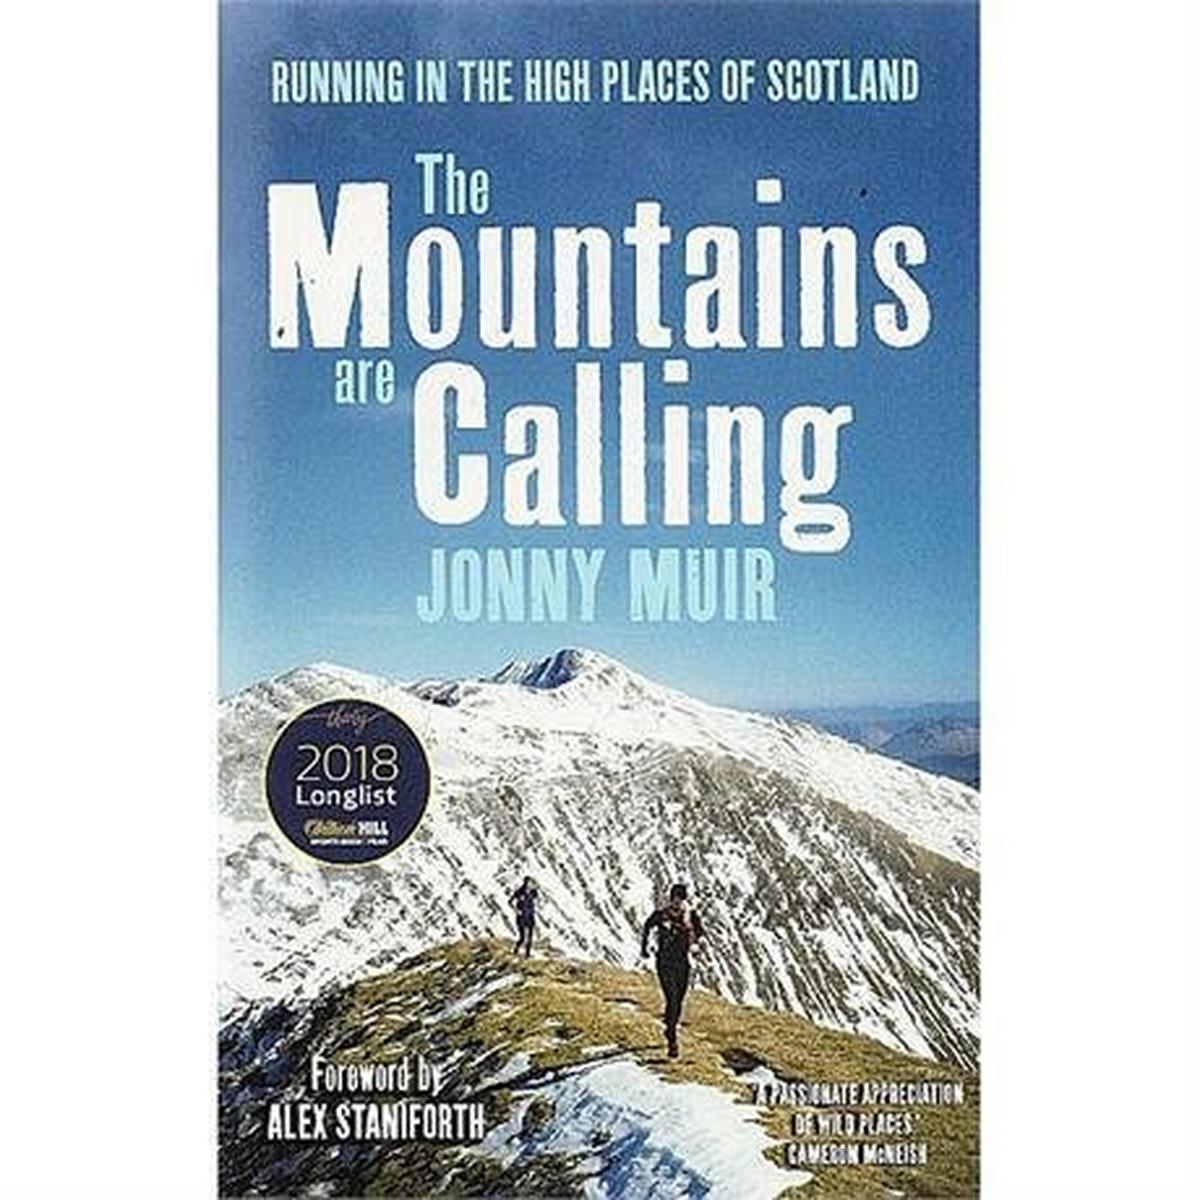 Miscellaneous Book: The Mountains are Calling - Jonny Muir (Paperback)